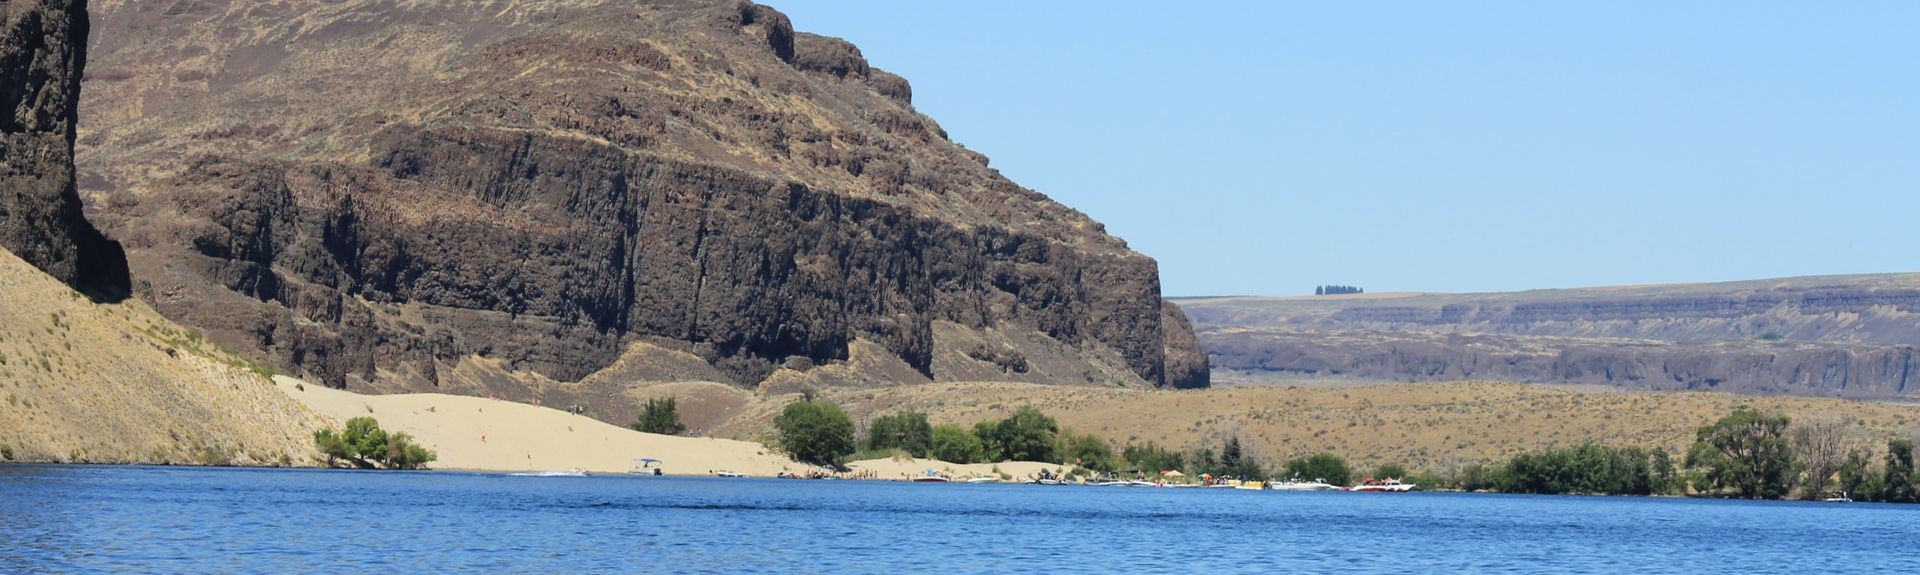 Sunland Estates, Quincy, Washington, Estados Unidos